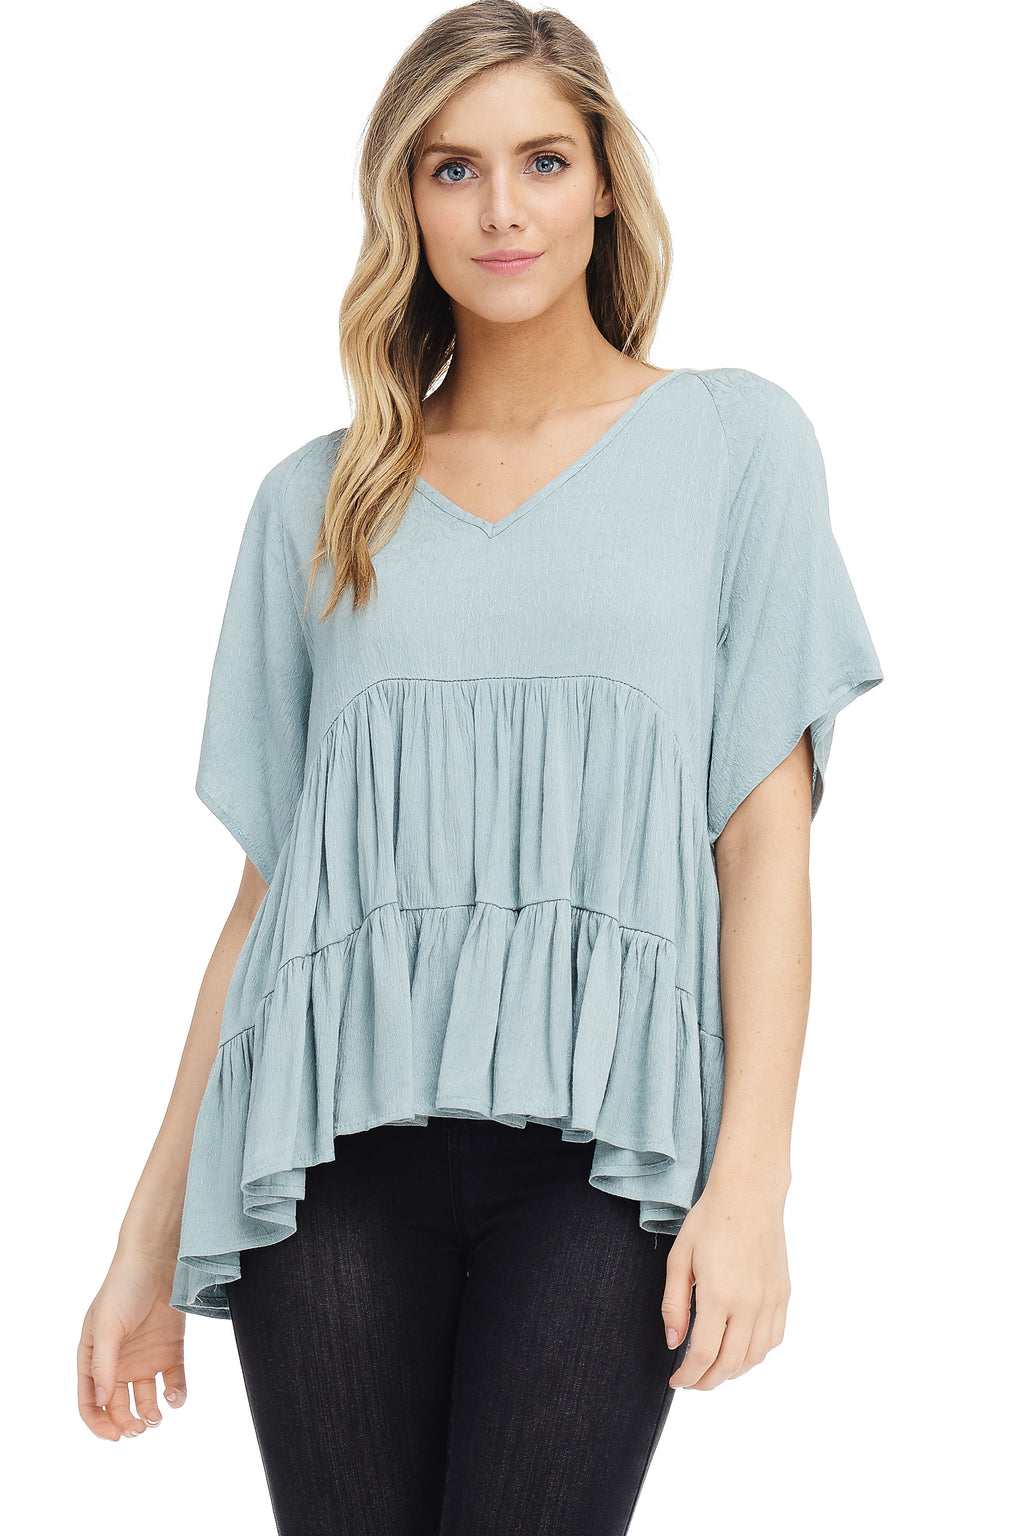 *Pre-Order* W18-161 Textured Tiered Ruffle Blouse